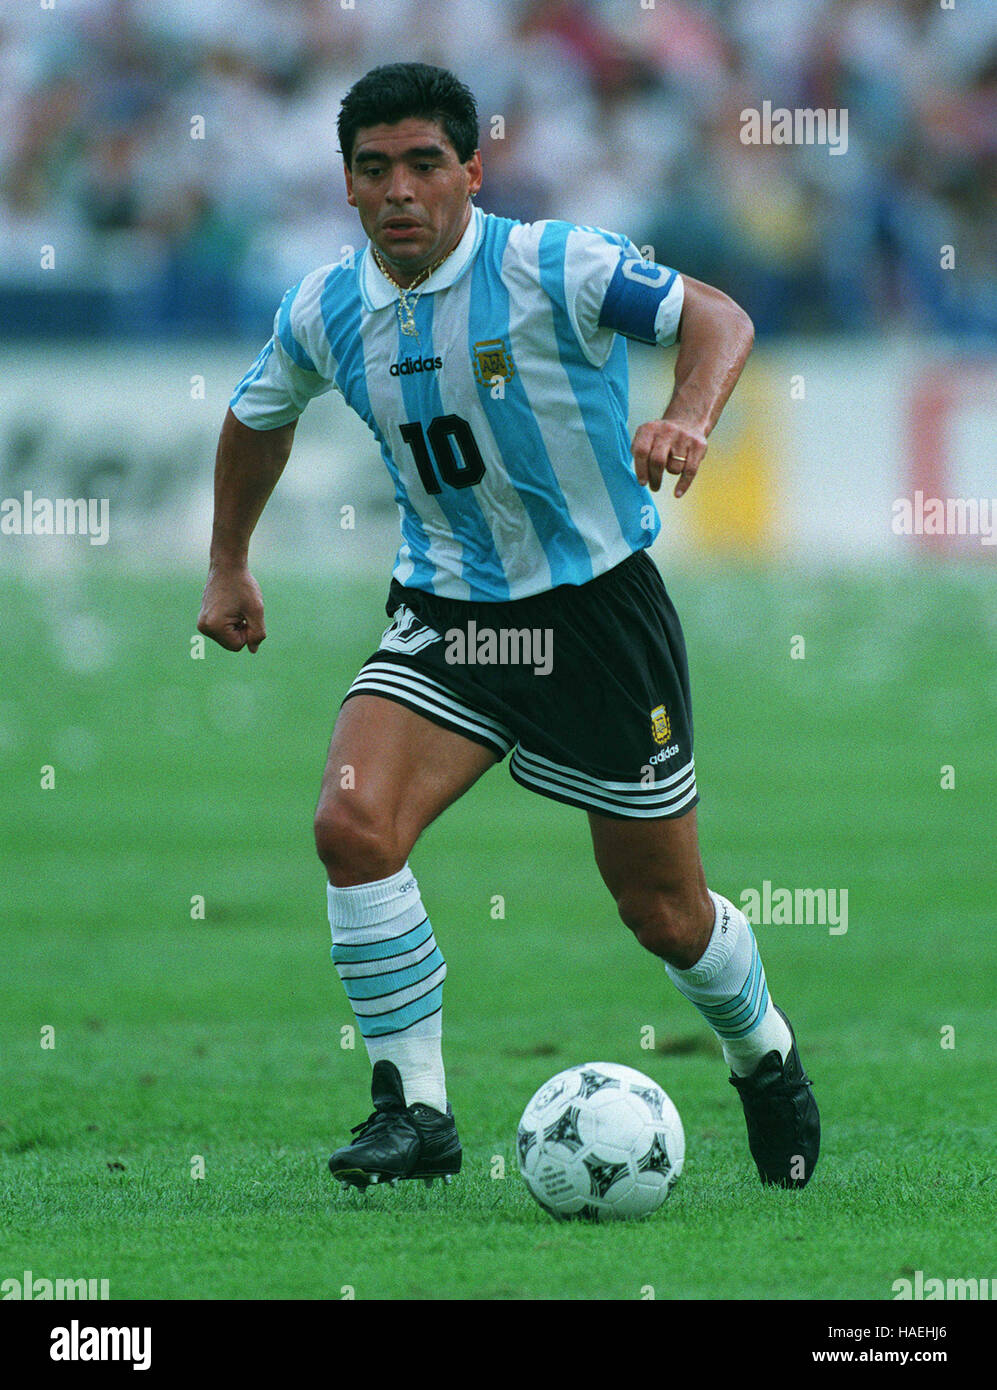 3e1f8b21e Diego maradona Stock Photos   Diego maradona Stock Images - Alamy